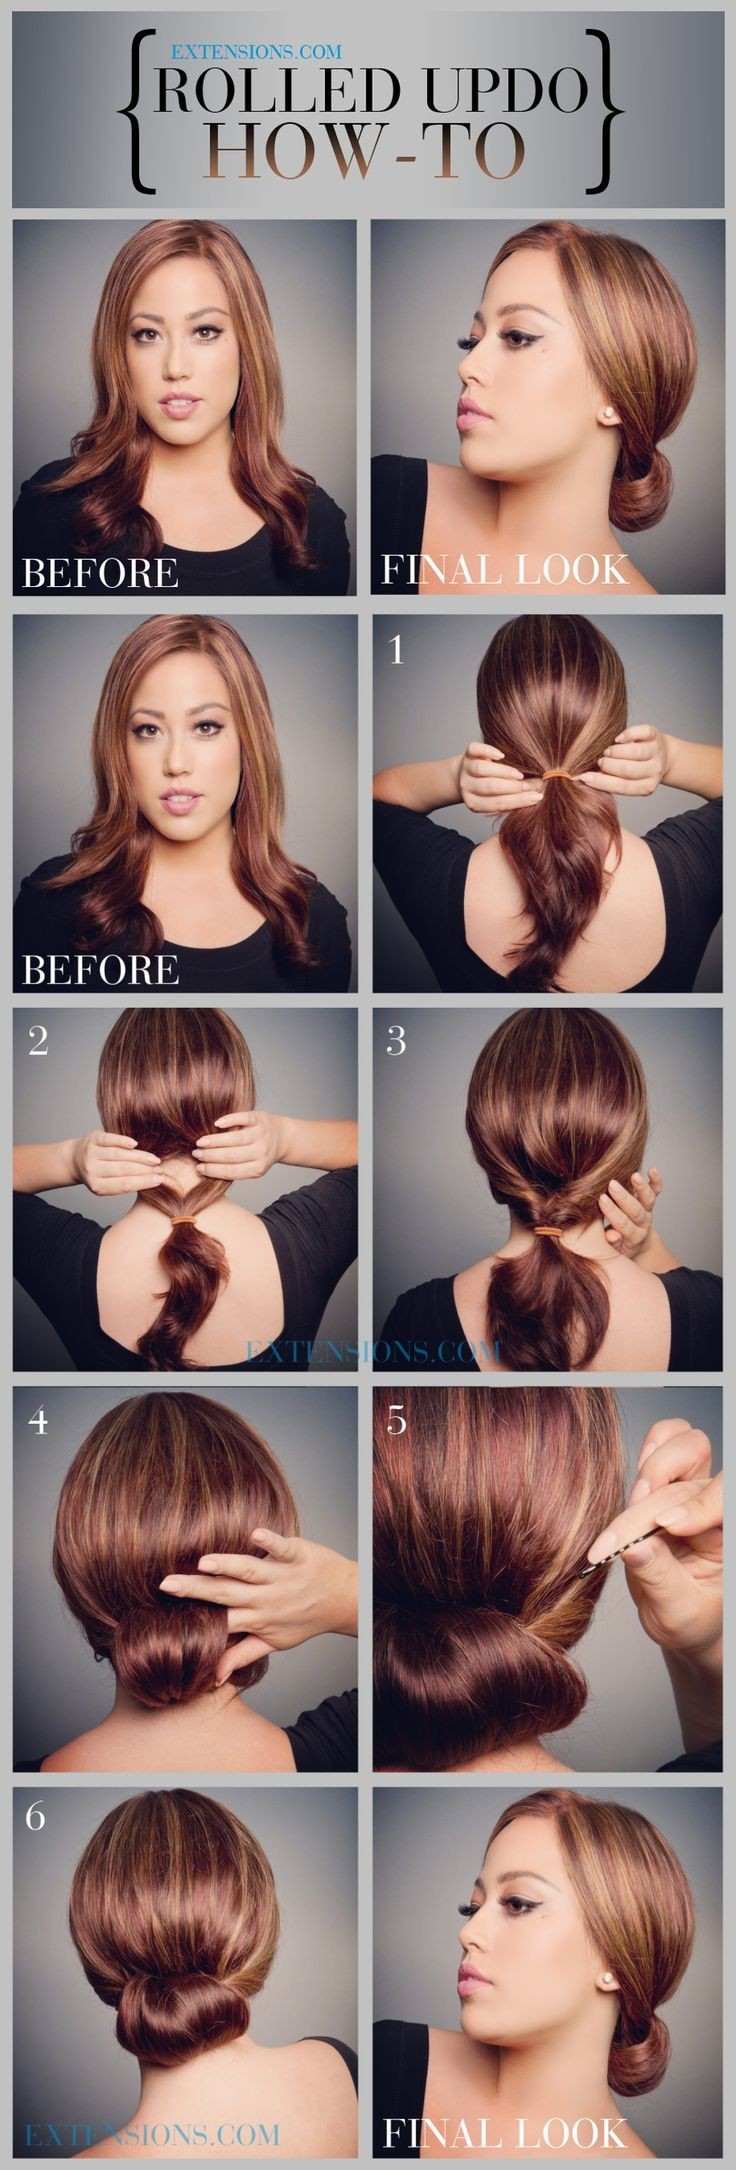 How to: Rolled Updo Hairstyle